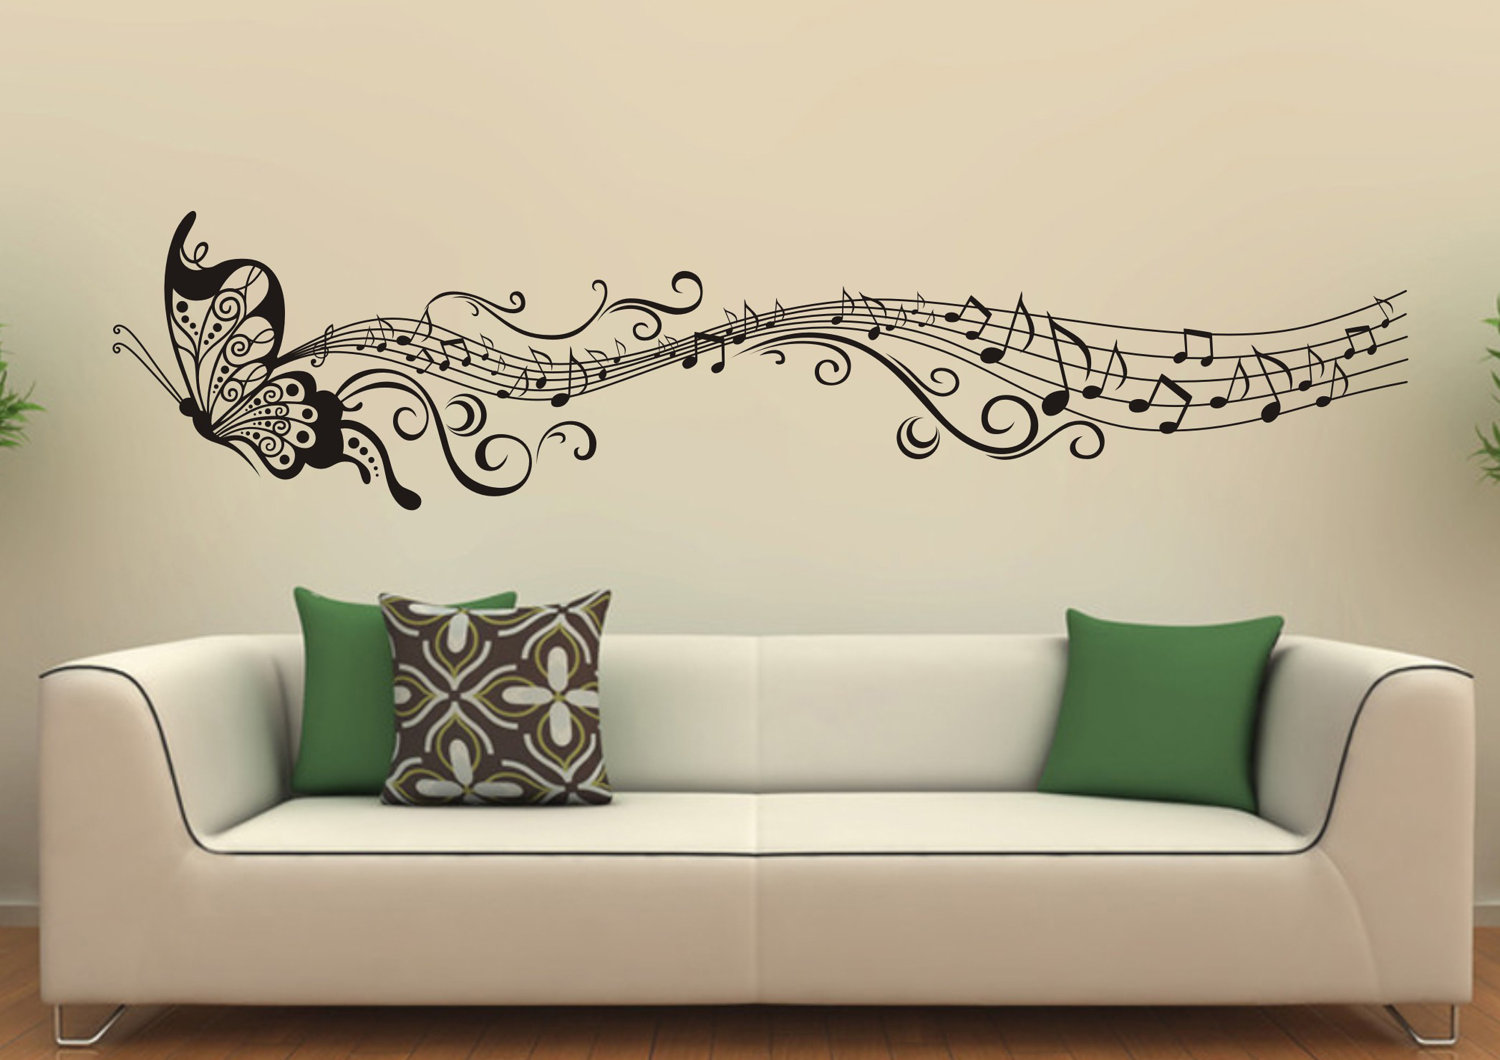 Wall Art Decor Make Your Home Beautiful With Unique Wall Decor